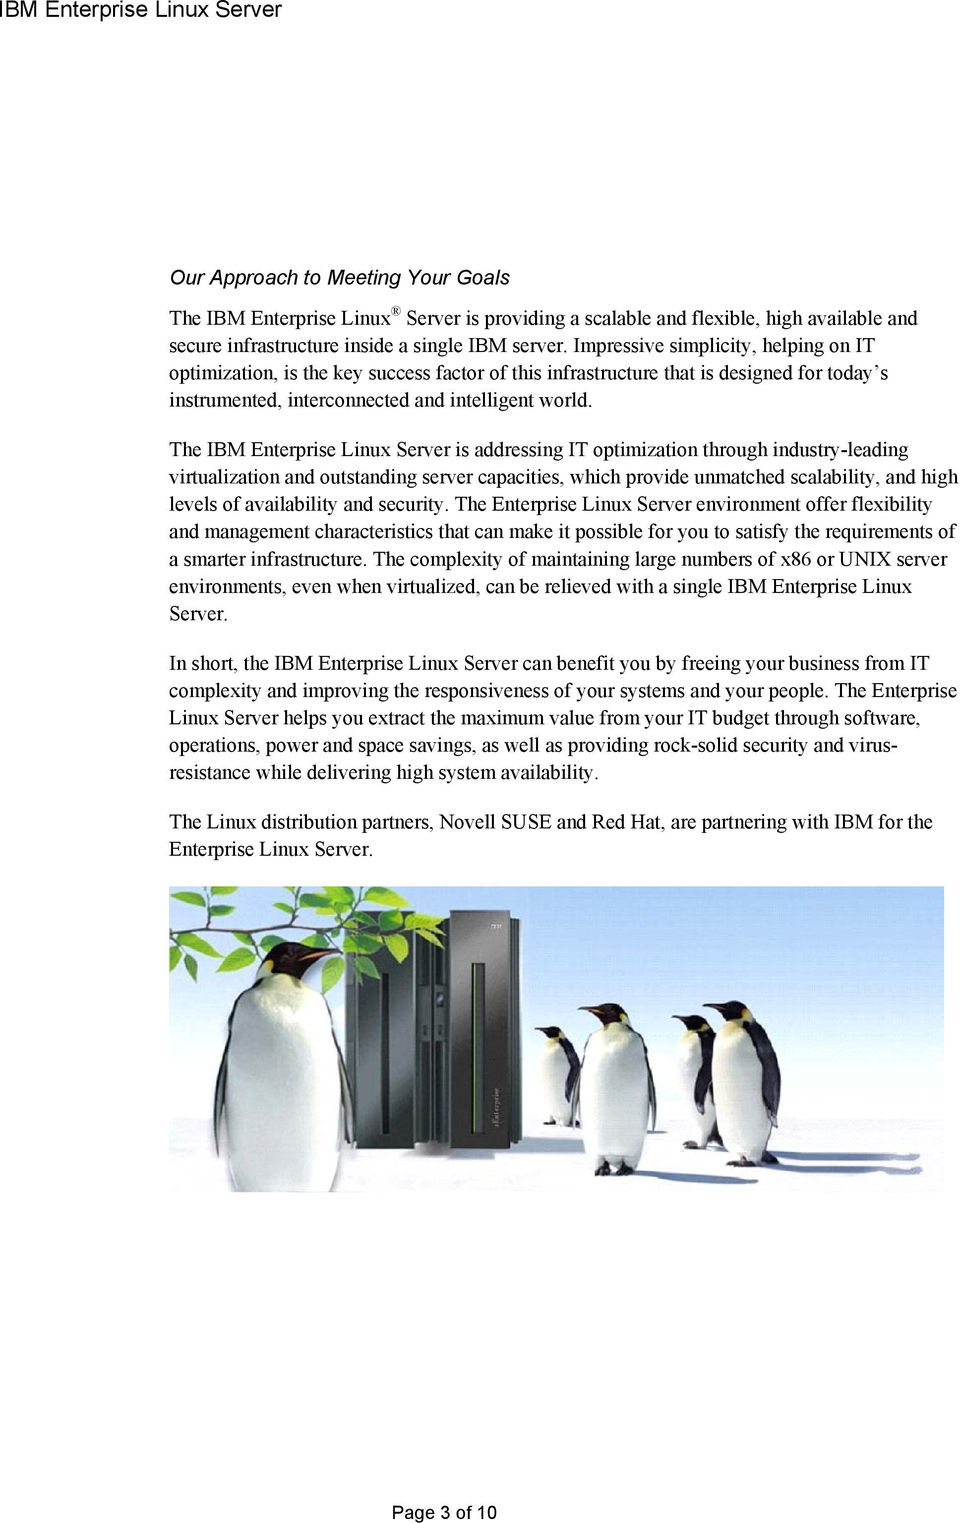 The IBM Enterprise Linux Server is addressing IT optimization through industry-leading virtualization and outstanding server capacities, which provide unmatched scalability, and high levels of